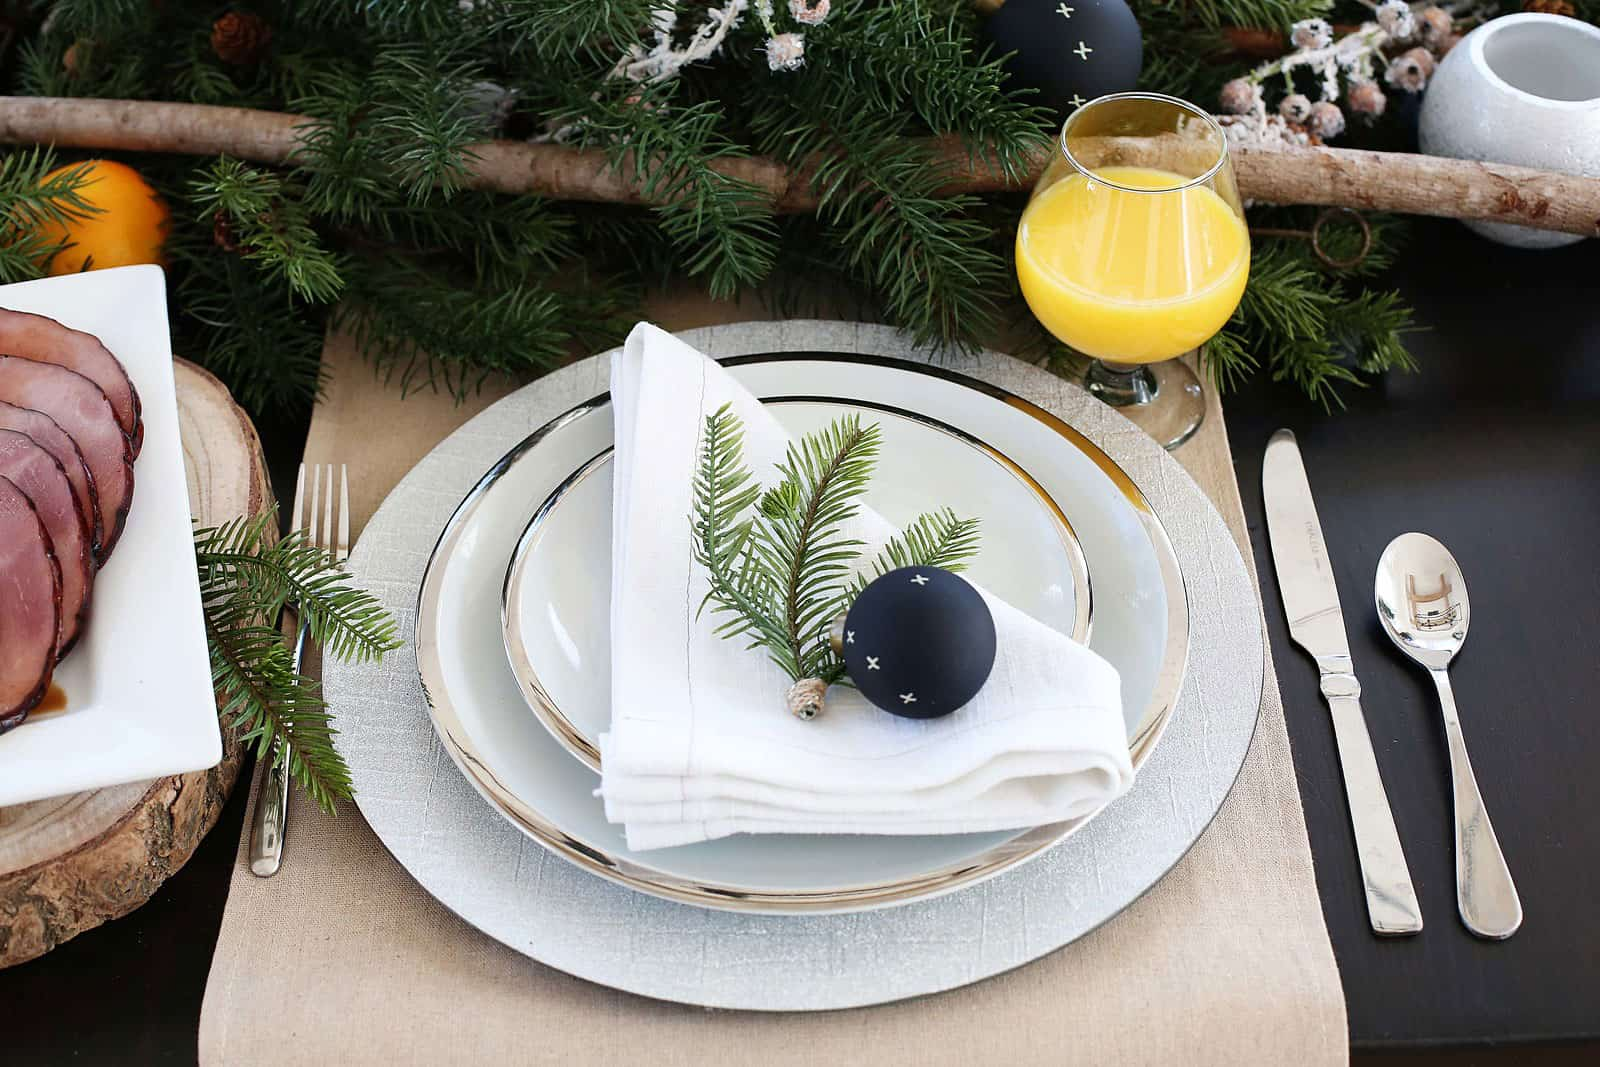 Easy Christmas Place Setting for your Christmas Breakfast or Brunch! I'm also sharing some great brunch recipe ideas for you guys! From www.overthebigmoon.com!